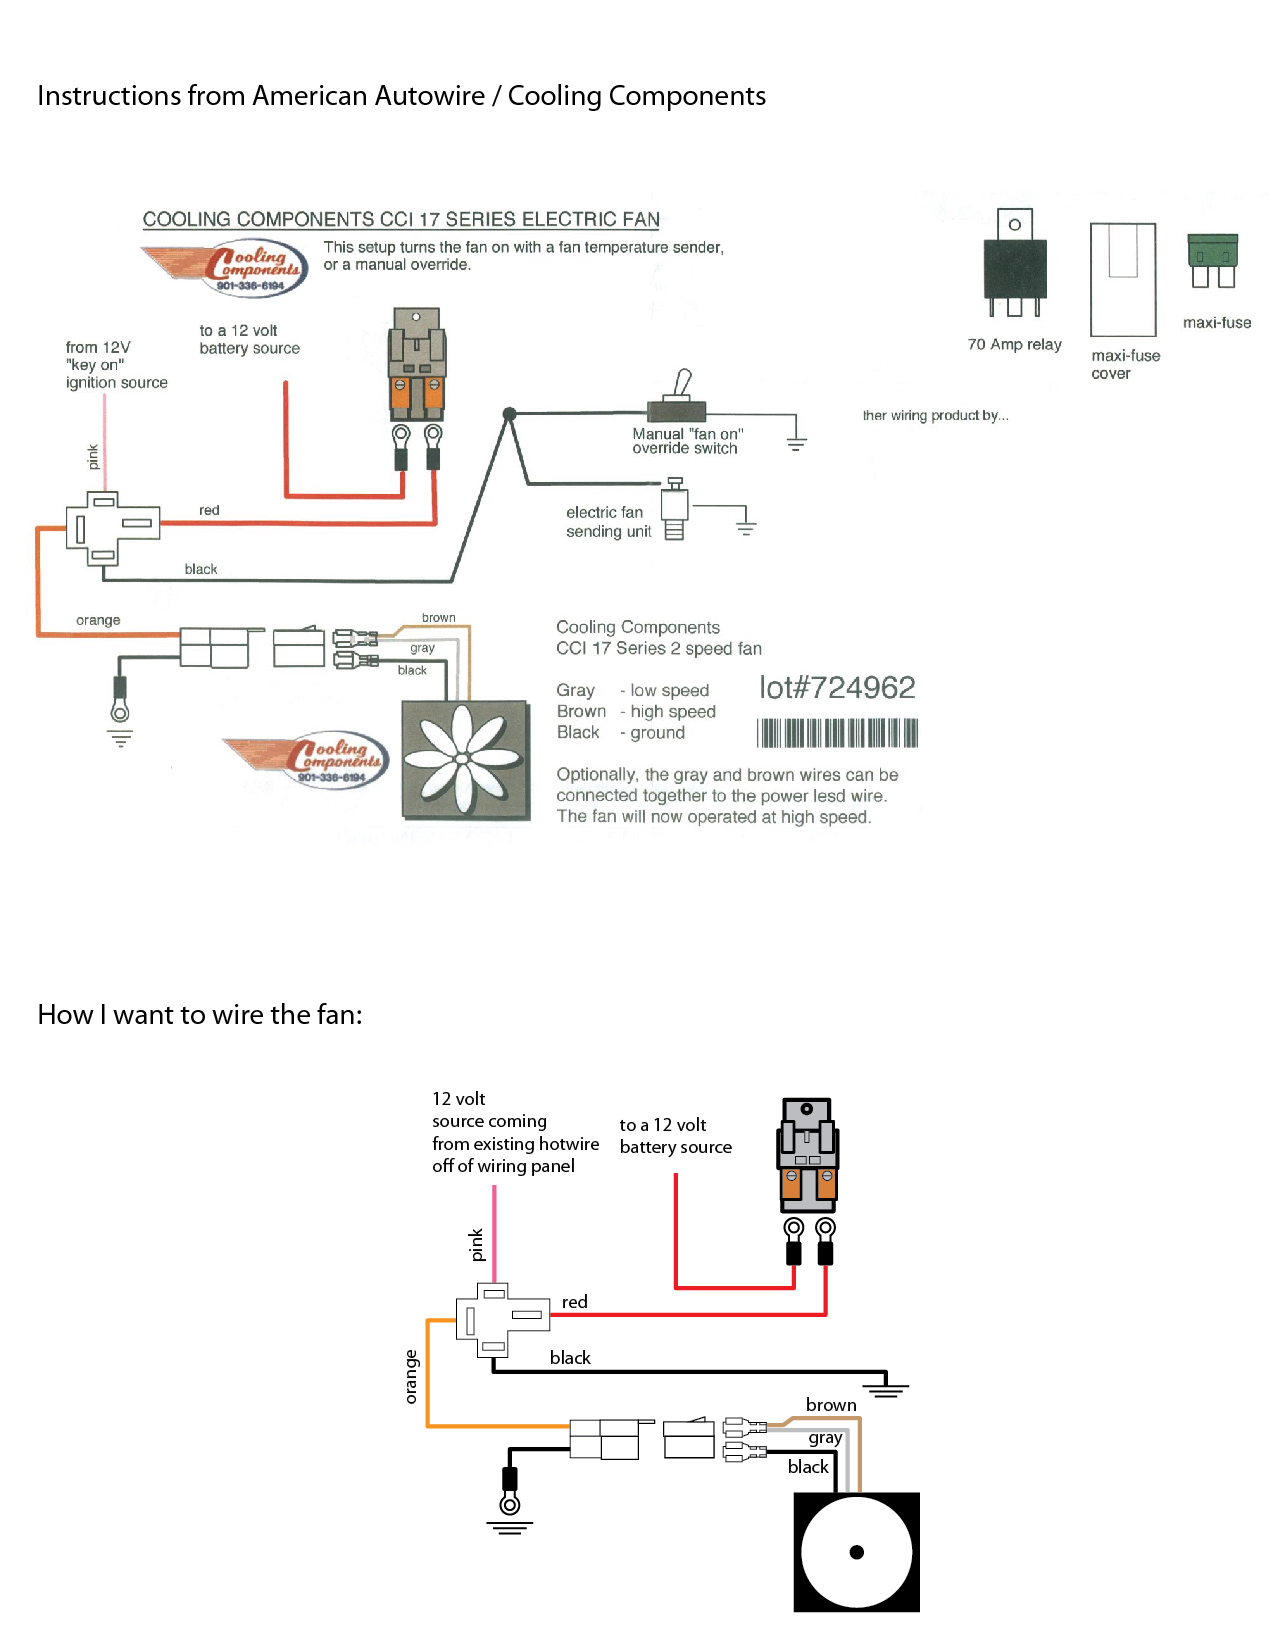 elec fan wiring diagram getting things done workflow pdf a cooling components in already wired car